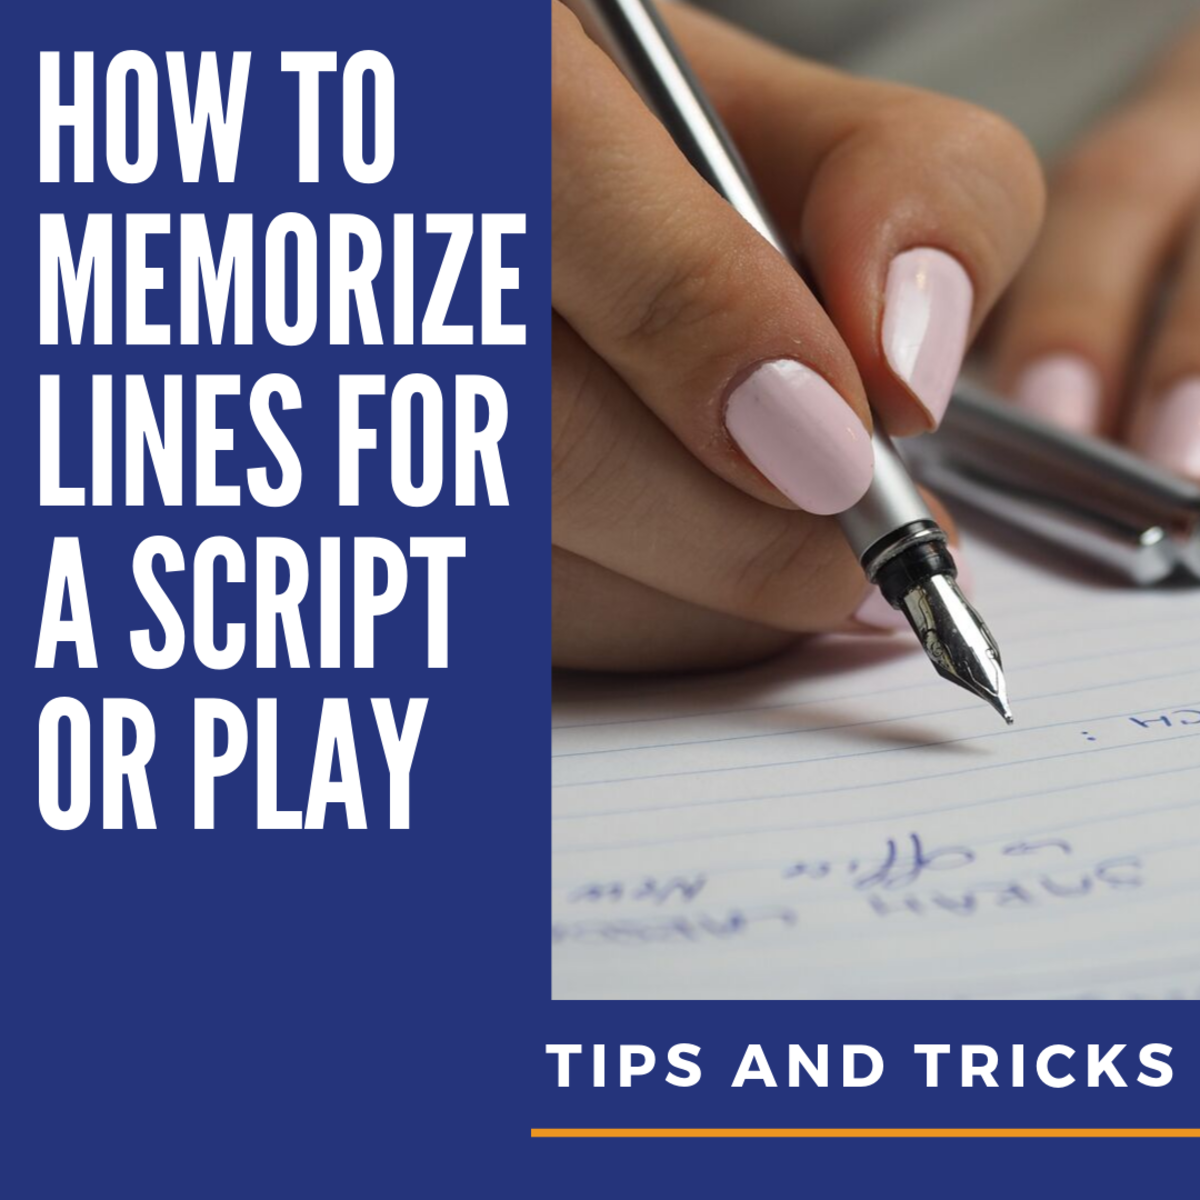 How to Memorize Lines for a Script or Play